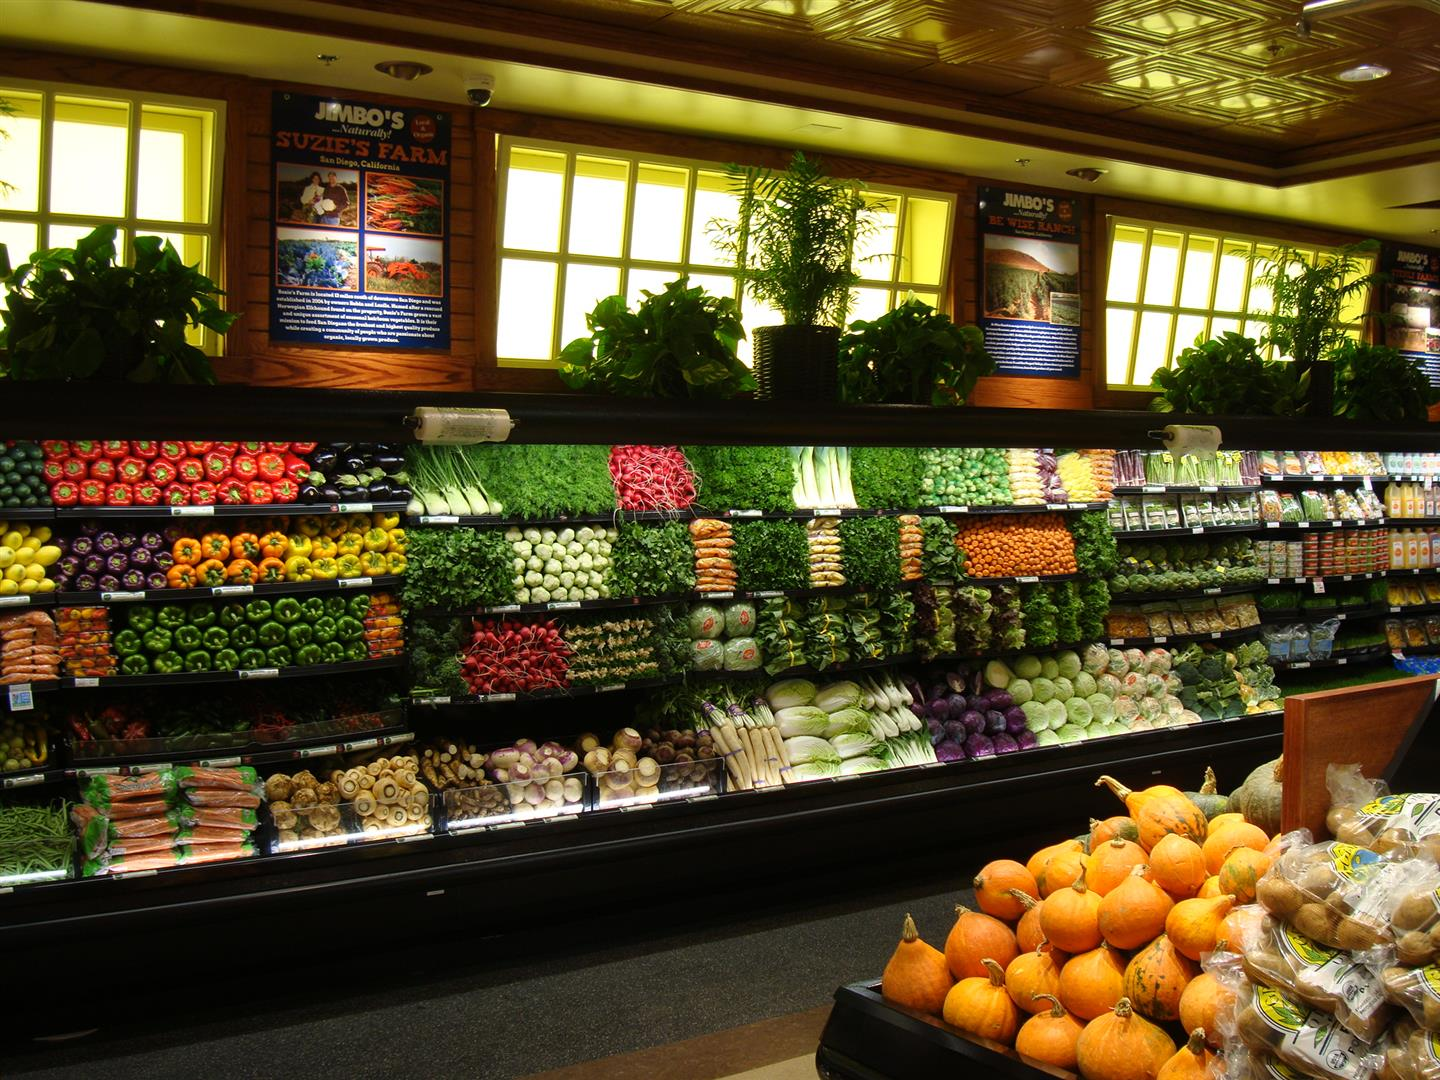 panel more training needed for retail produce managers